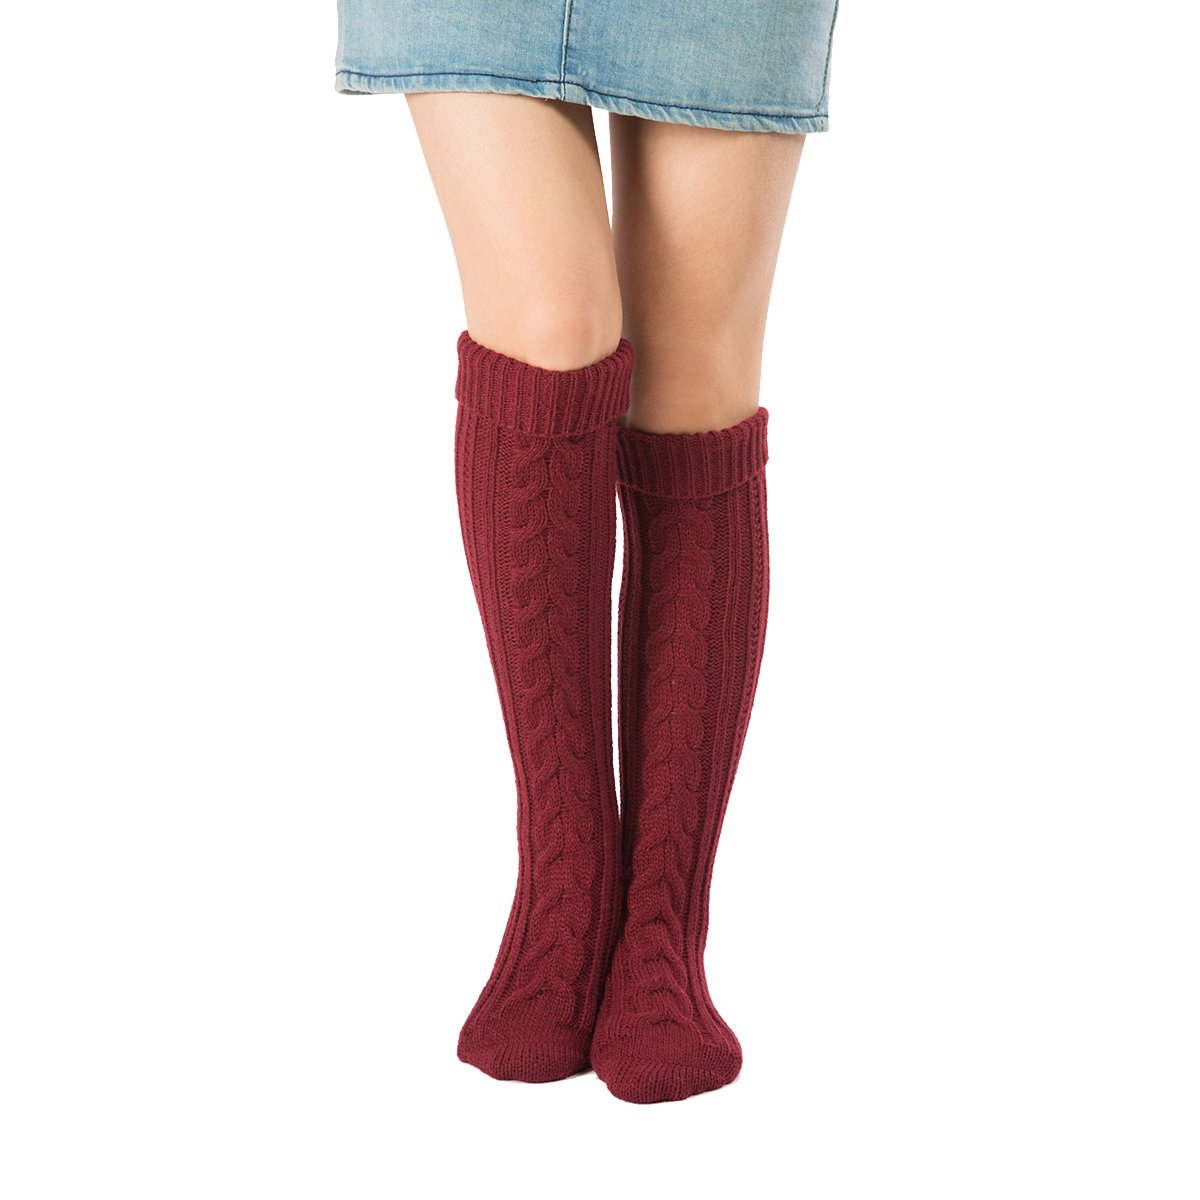 Women Leg Warmer Boot Cuffs Step Foot Cable Knit Knee Stocking High Socks Supreme glory SGto-E874769